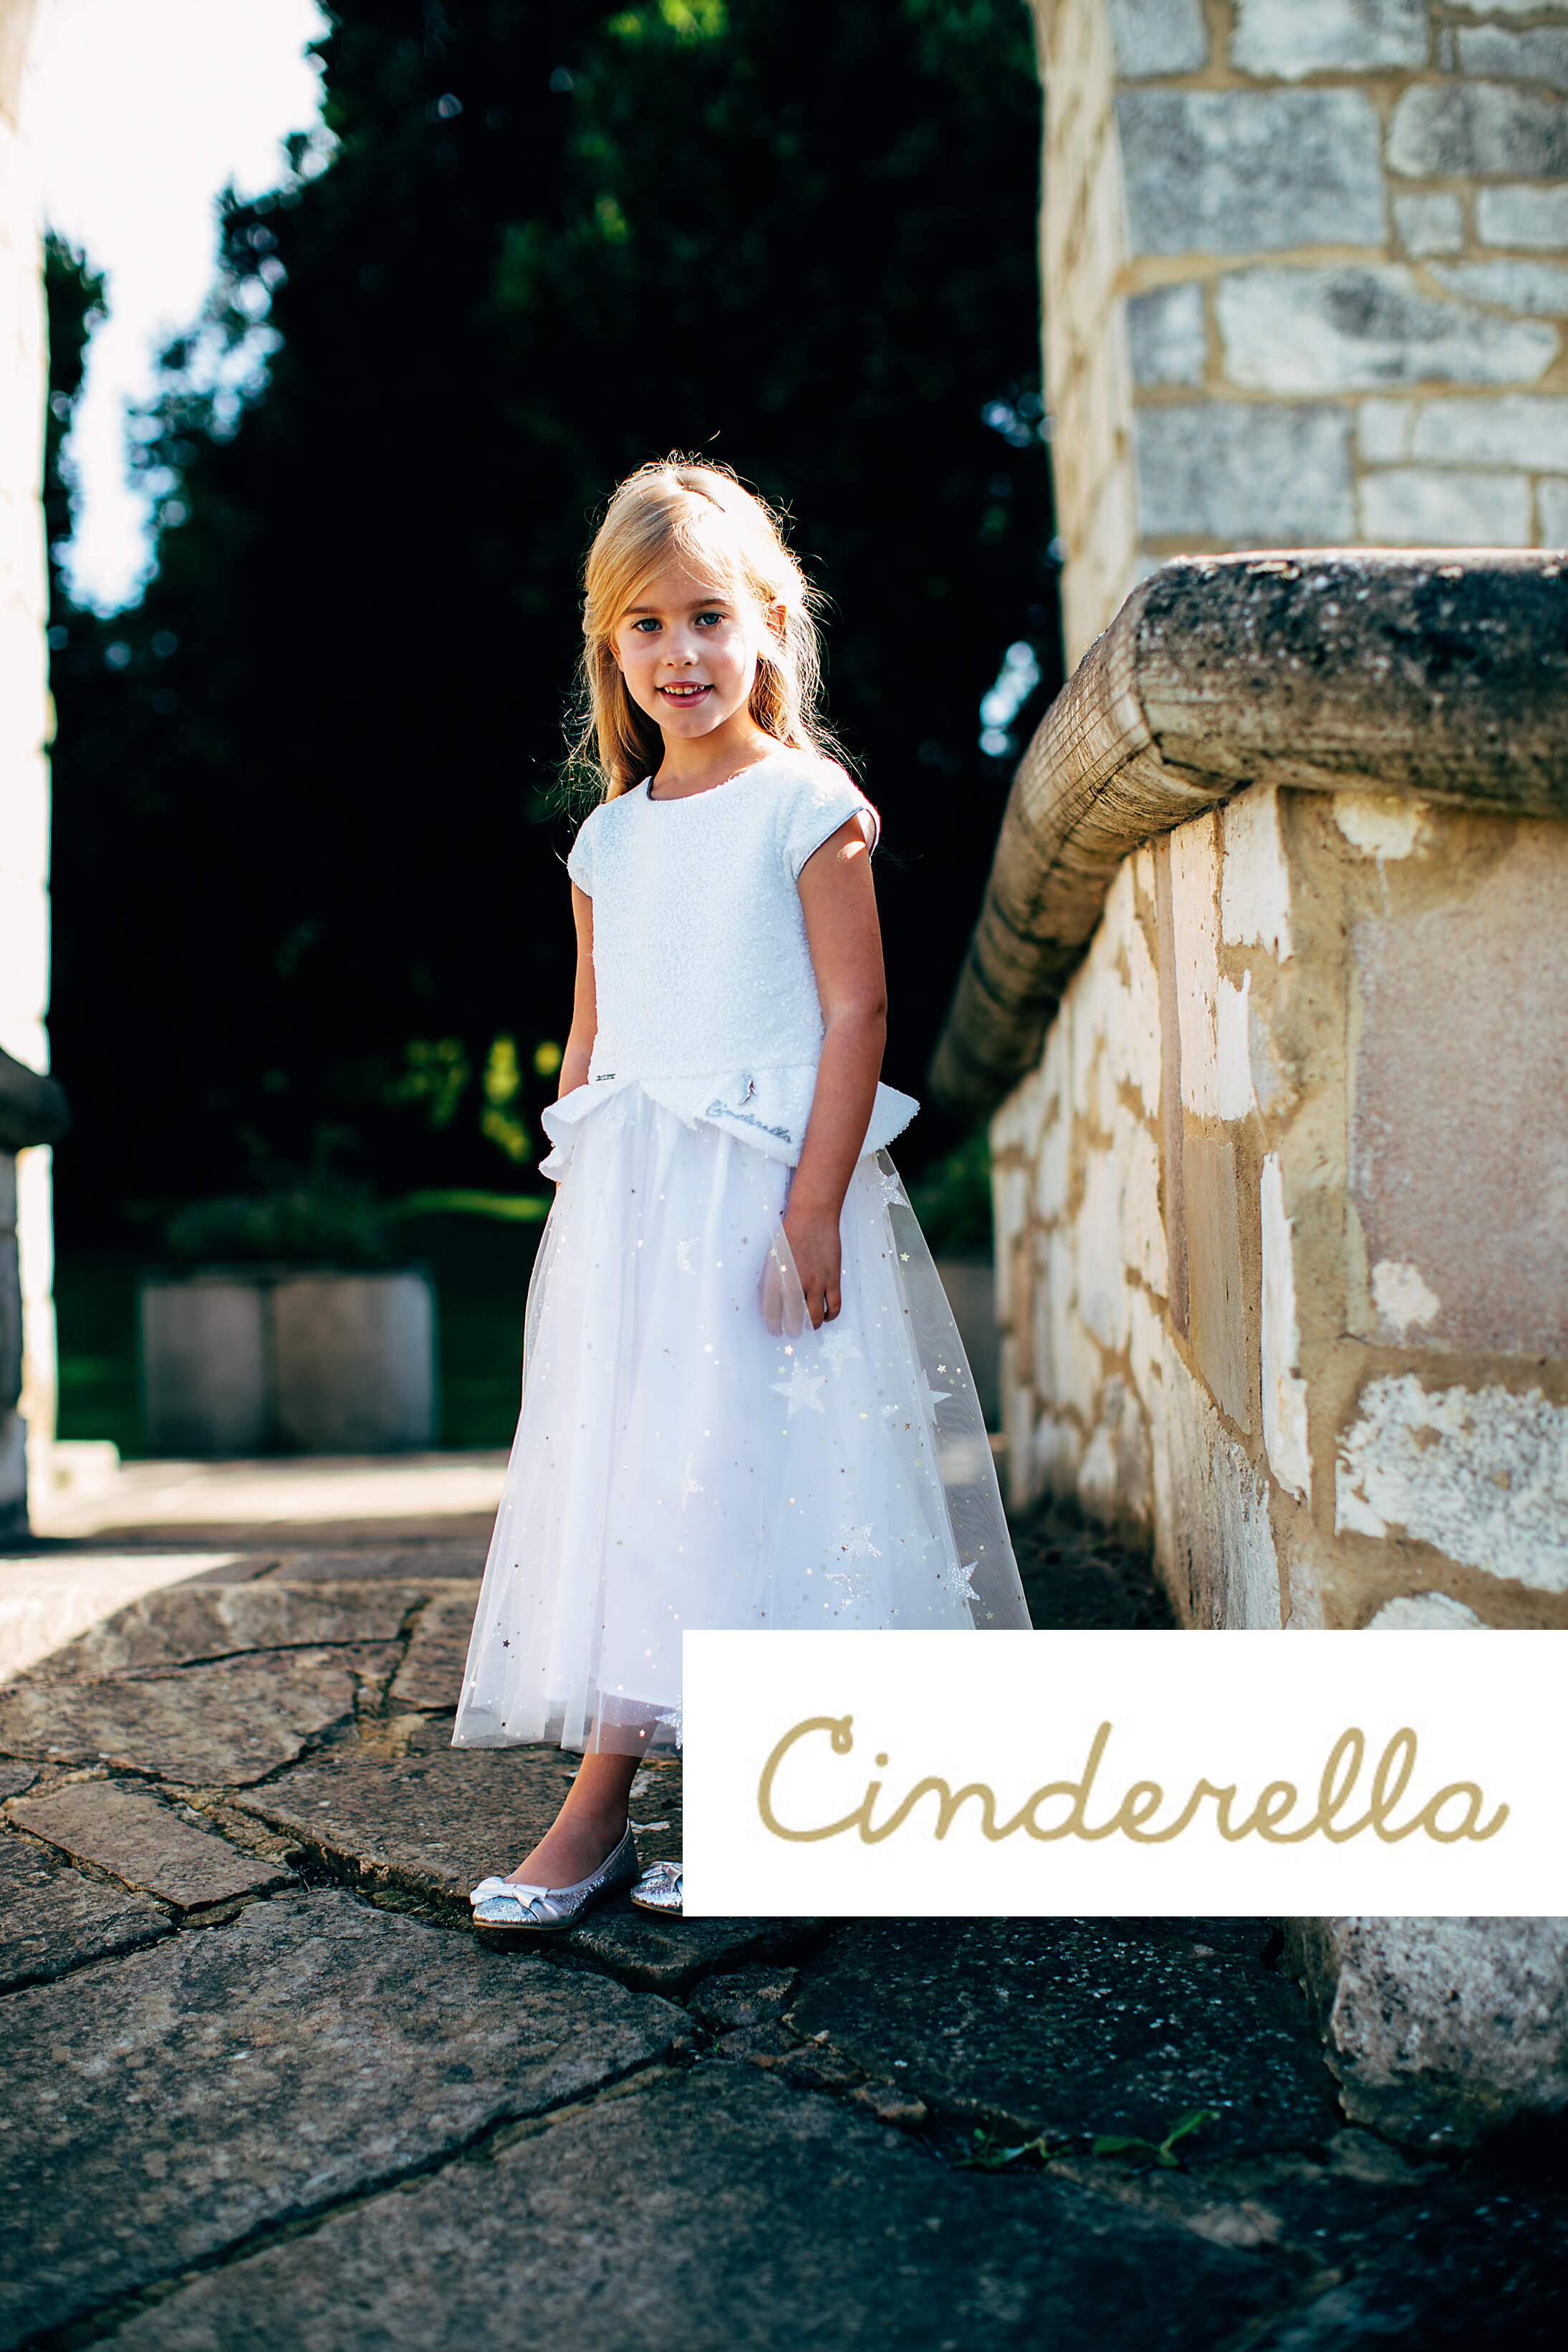 Girls Formal Disney Boutique Cinderella White Star White Sequin Bridesmaid Dress